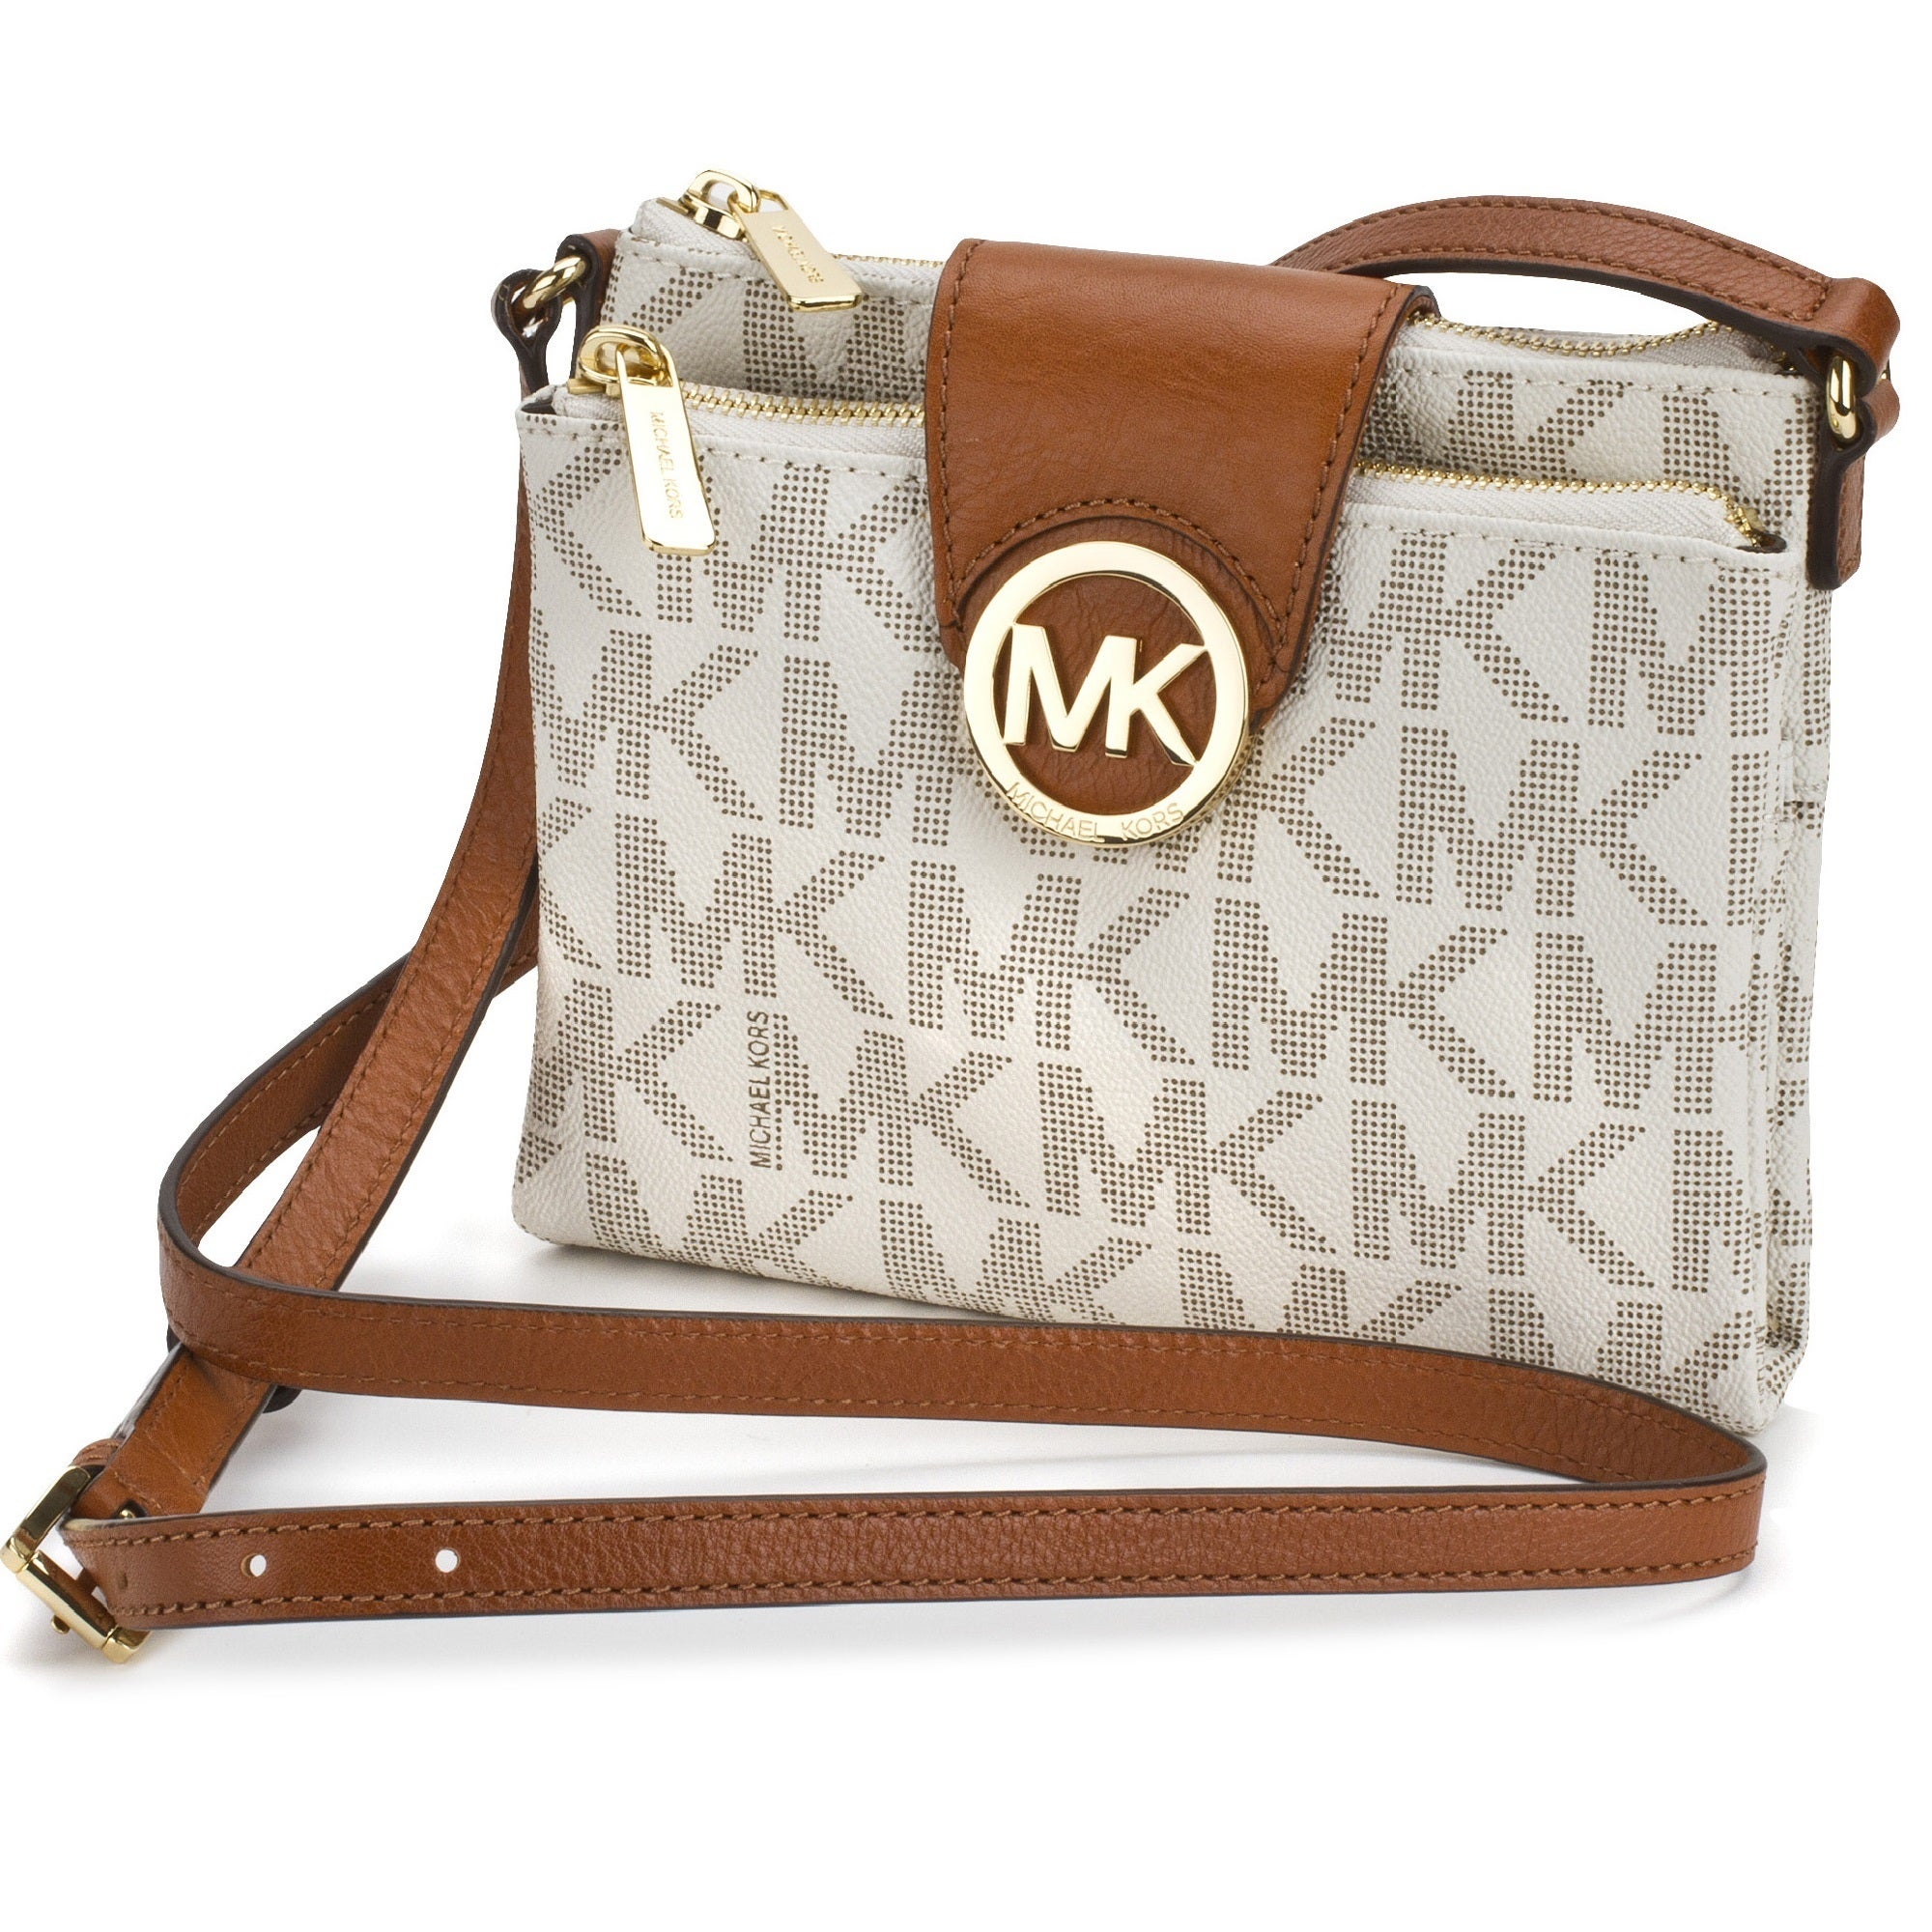 ... best price shop michael kors fulton large vanilla signature crossbody  handbag free shipping today overstock 9613573 ... 28f538f188b96